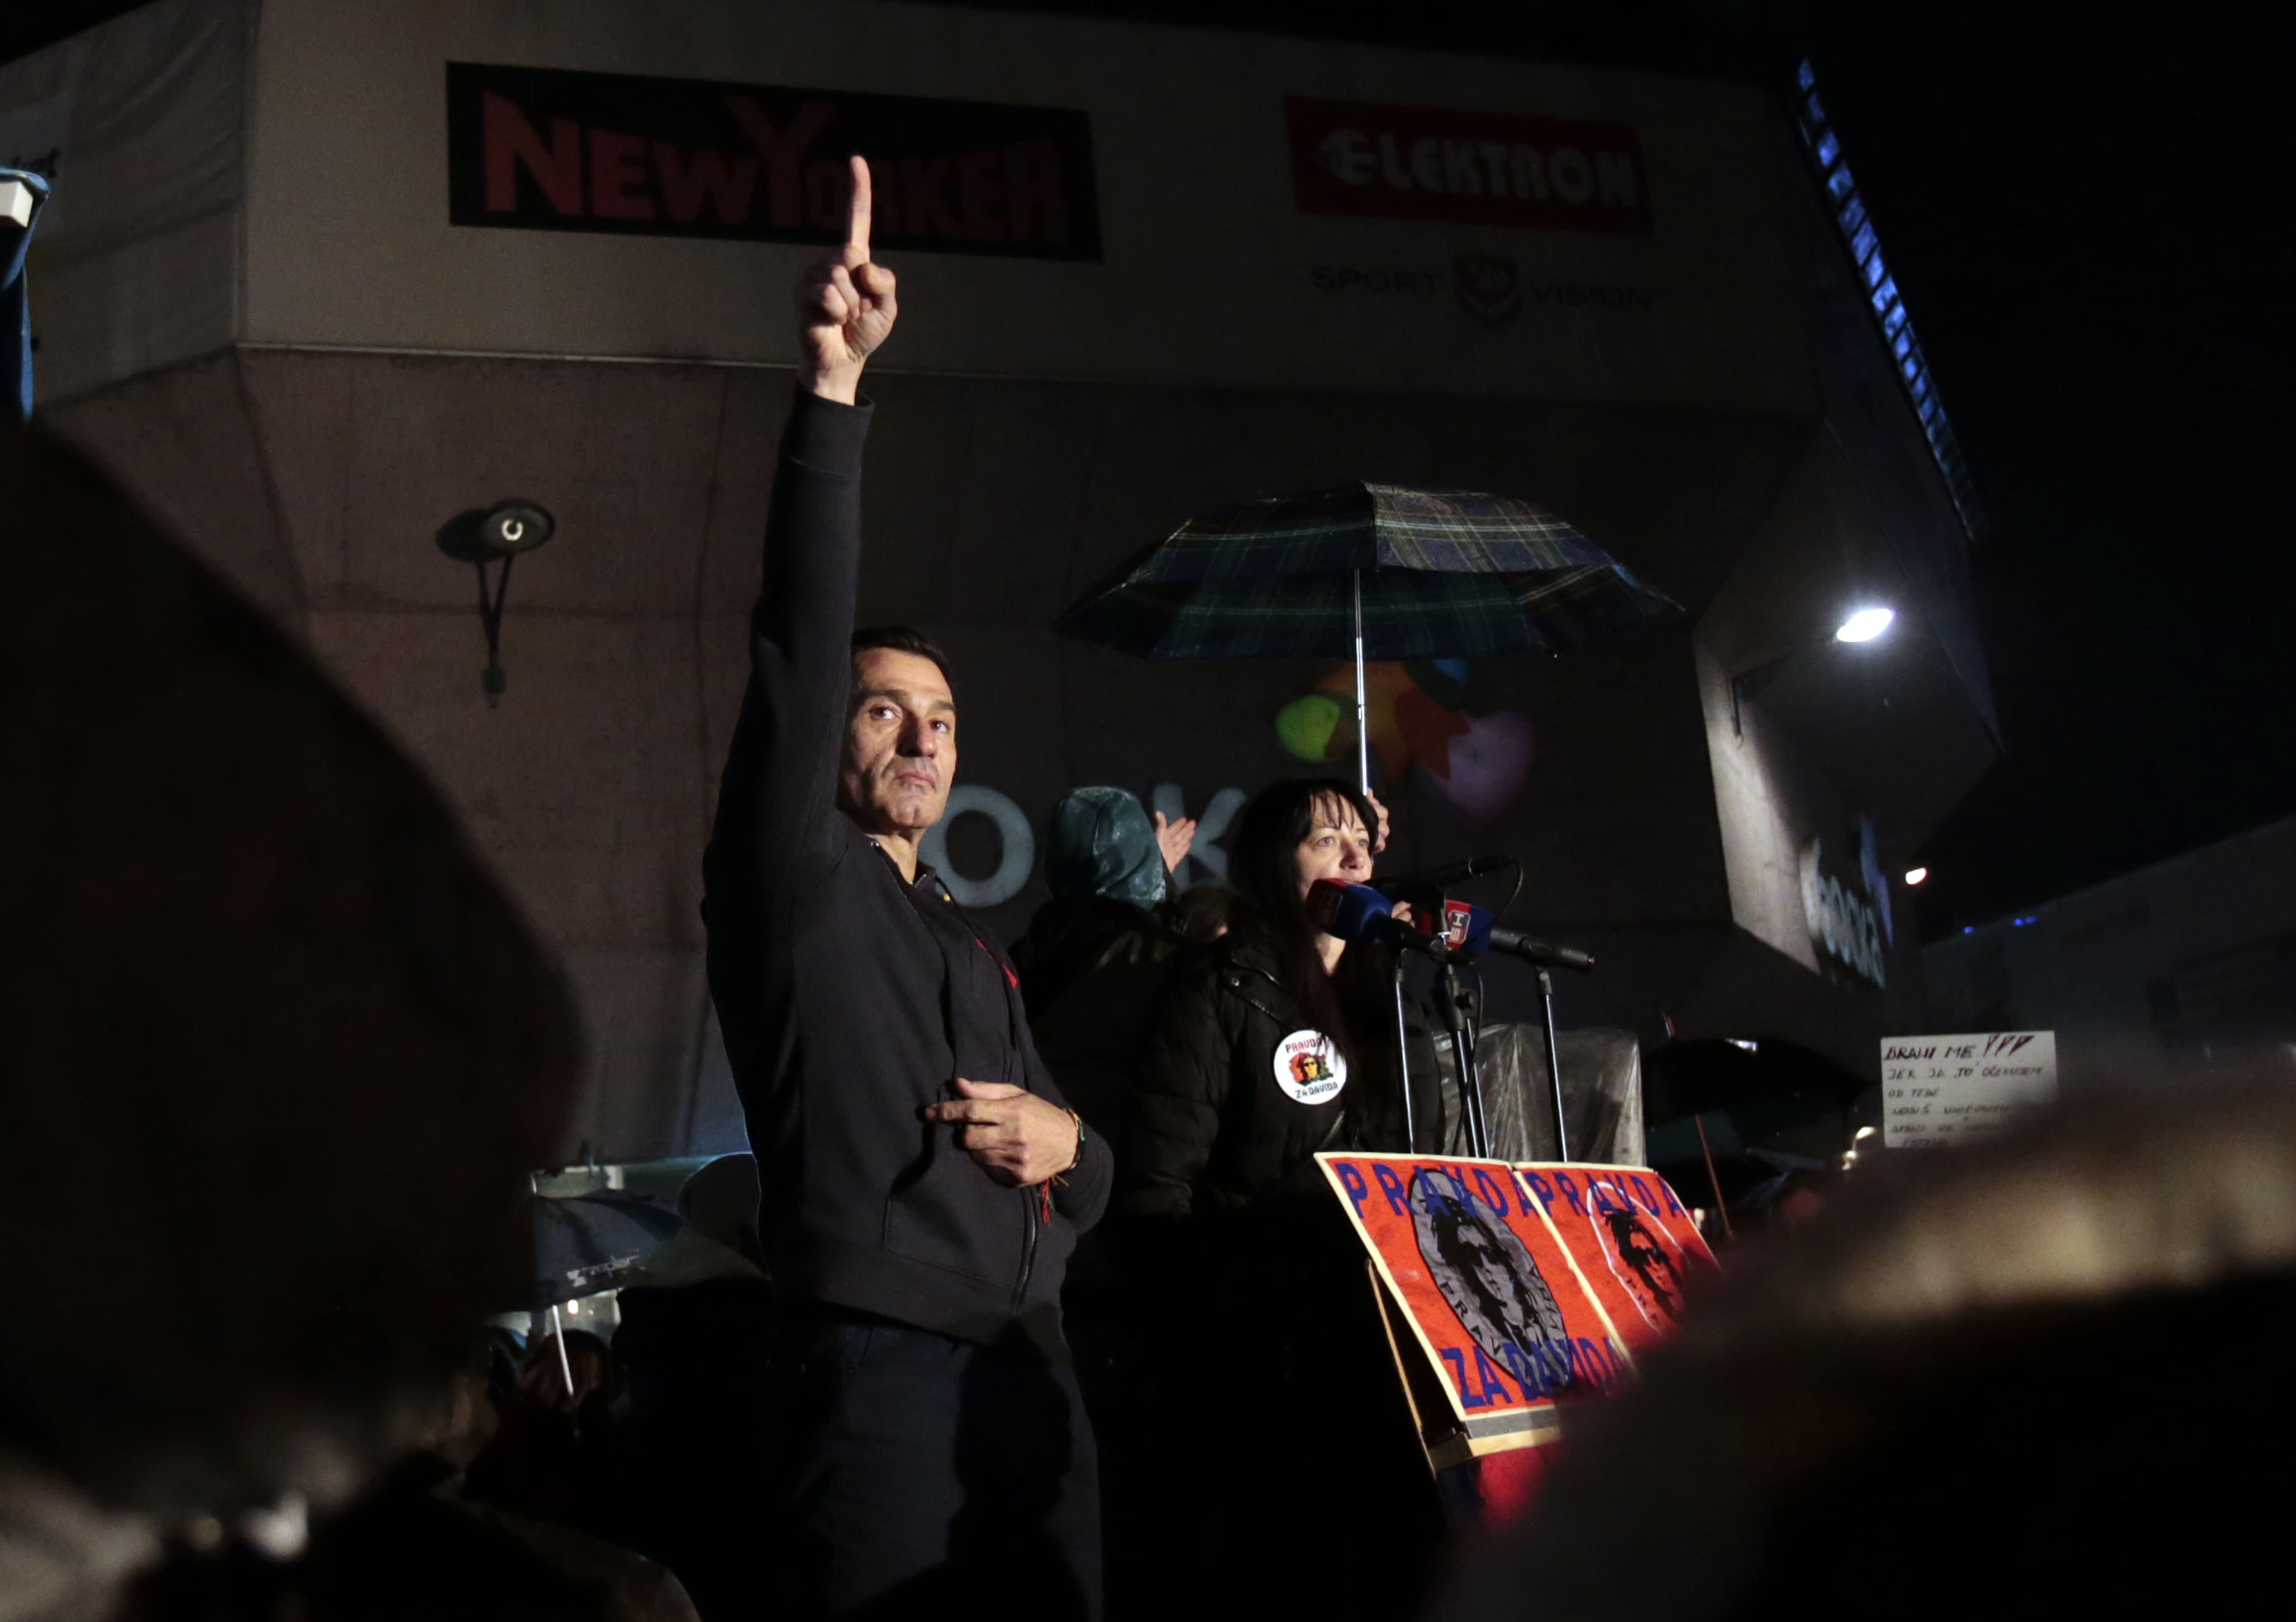 Davor Dragicevic, left, gestures to supporters during a protest in Banja Luka, Bosnia on Sunday, Dec. 30, 2018. Several thousand Bosnians have rallied in support of the man whose quest for the truth about his son's death has turned into a wider movement for justice and rule of law in the Balkan country. The protest on Sunday demanded the ouster of Bosnian Serb Interior Minister Dragan Lukac and top police officials over the death in March of 21-year-old David Dragicevic. (AP Photo/Amel Emric)